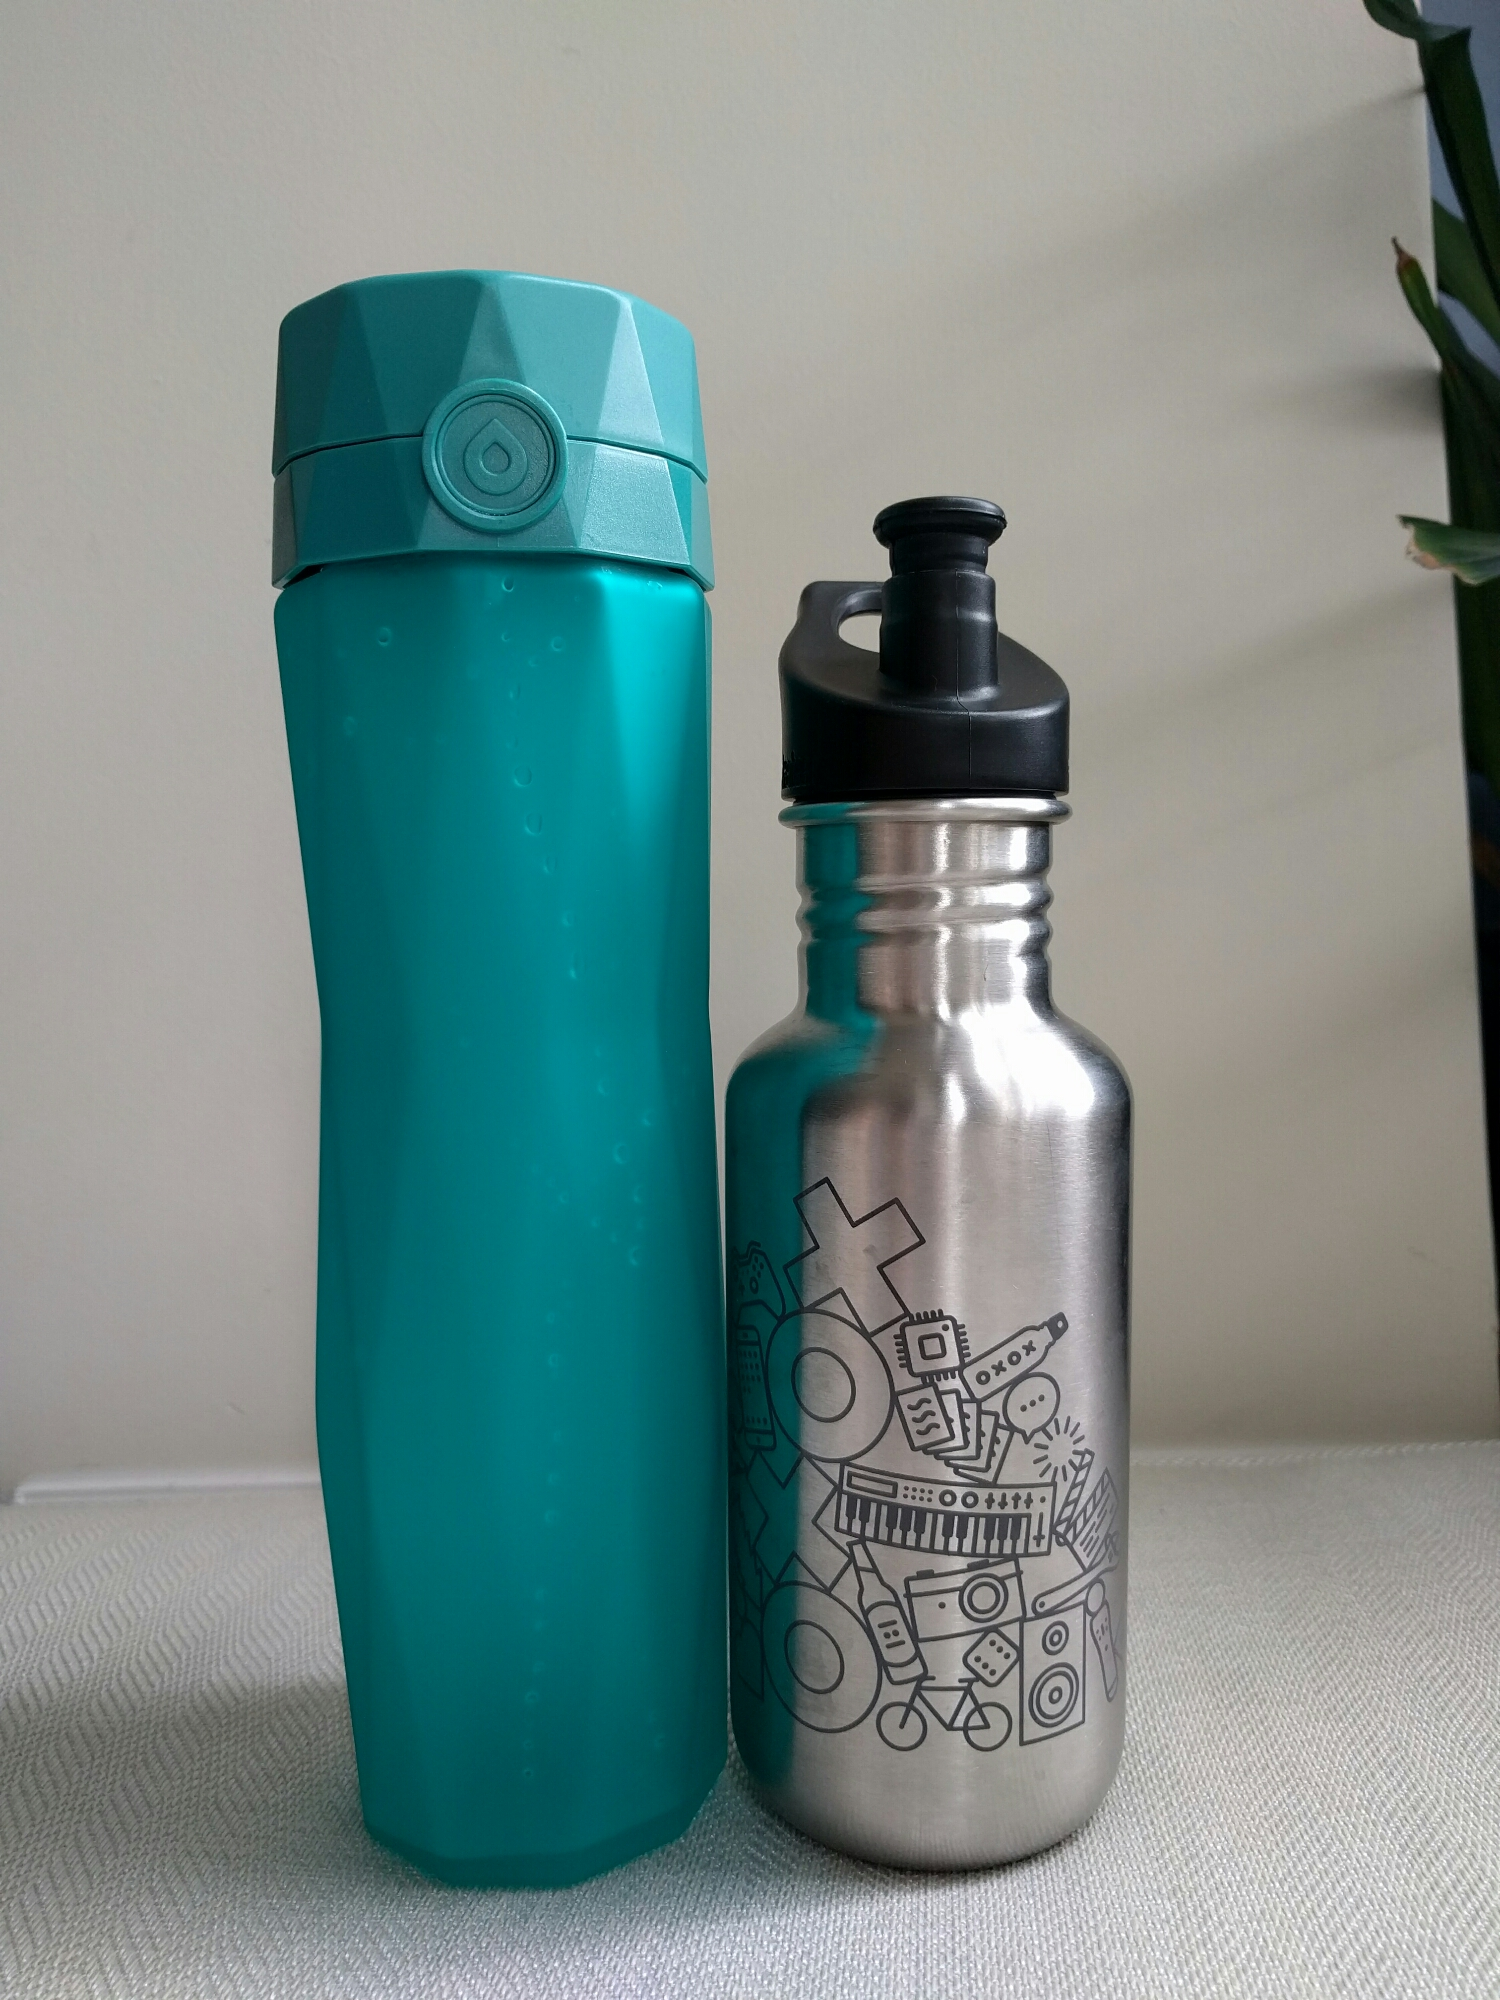 My go-to water bottle (kleen kanteen) for additional scale.